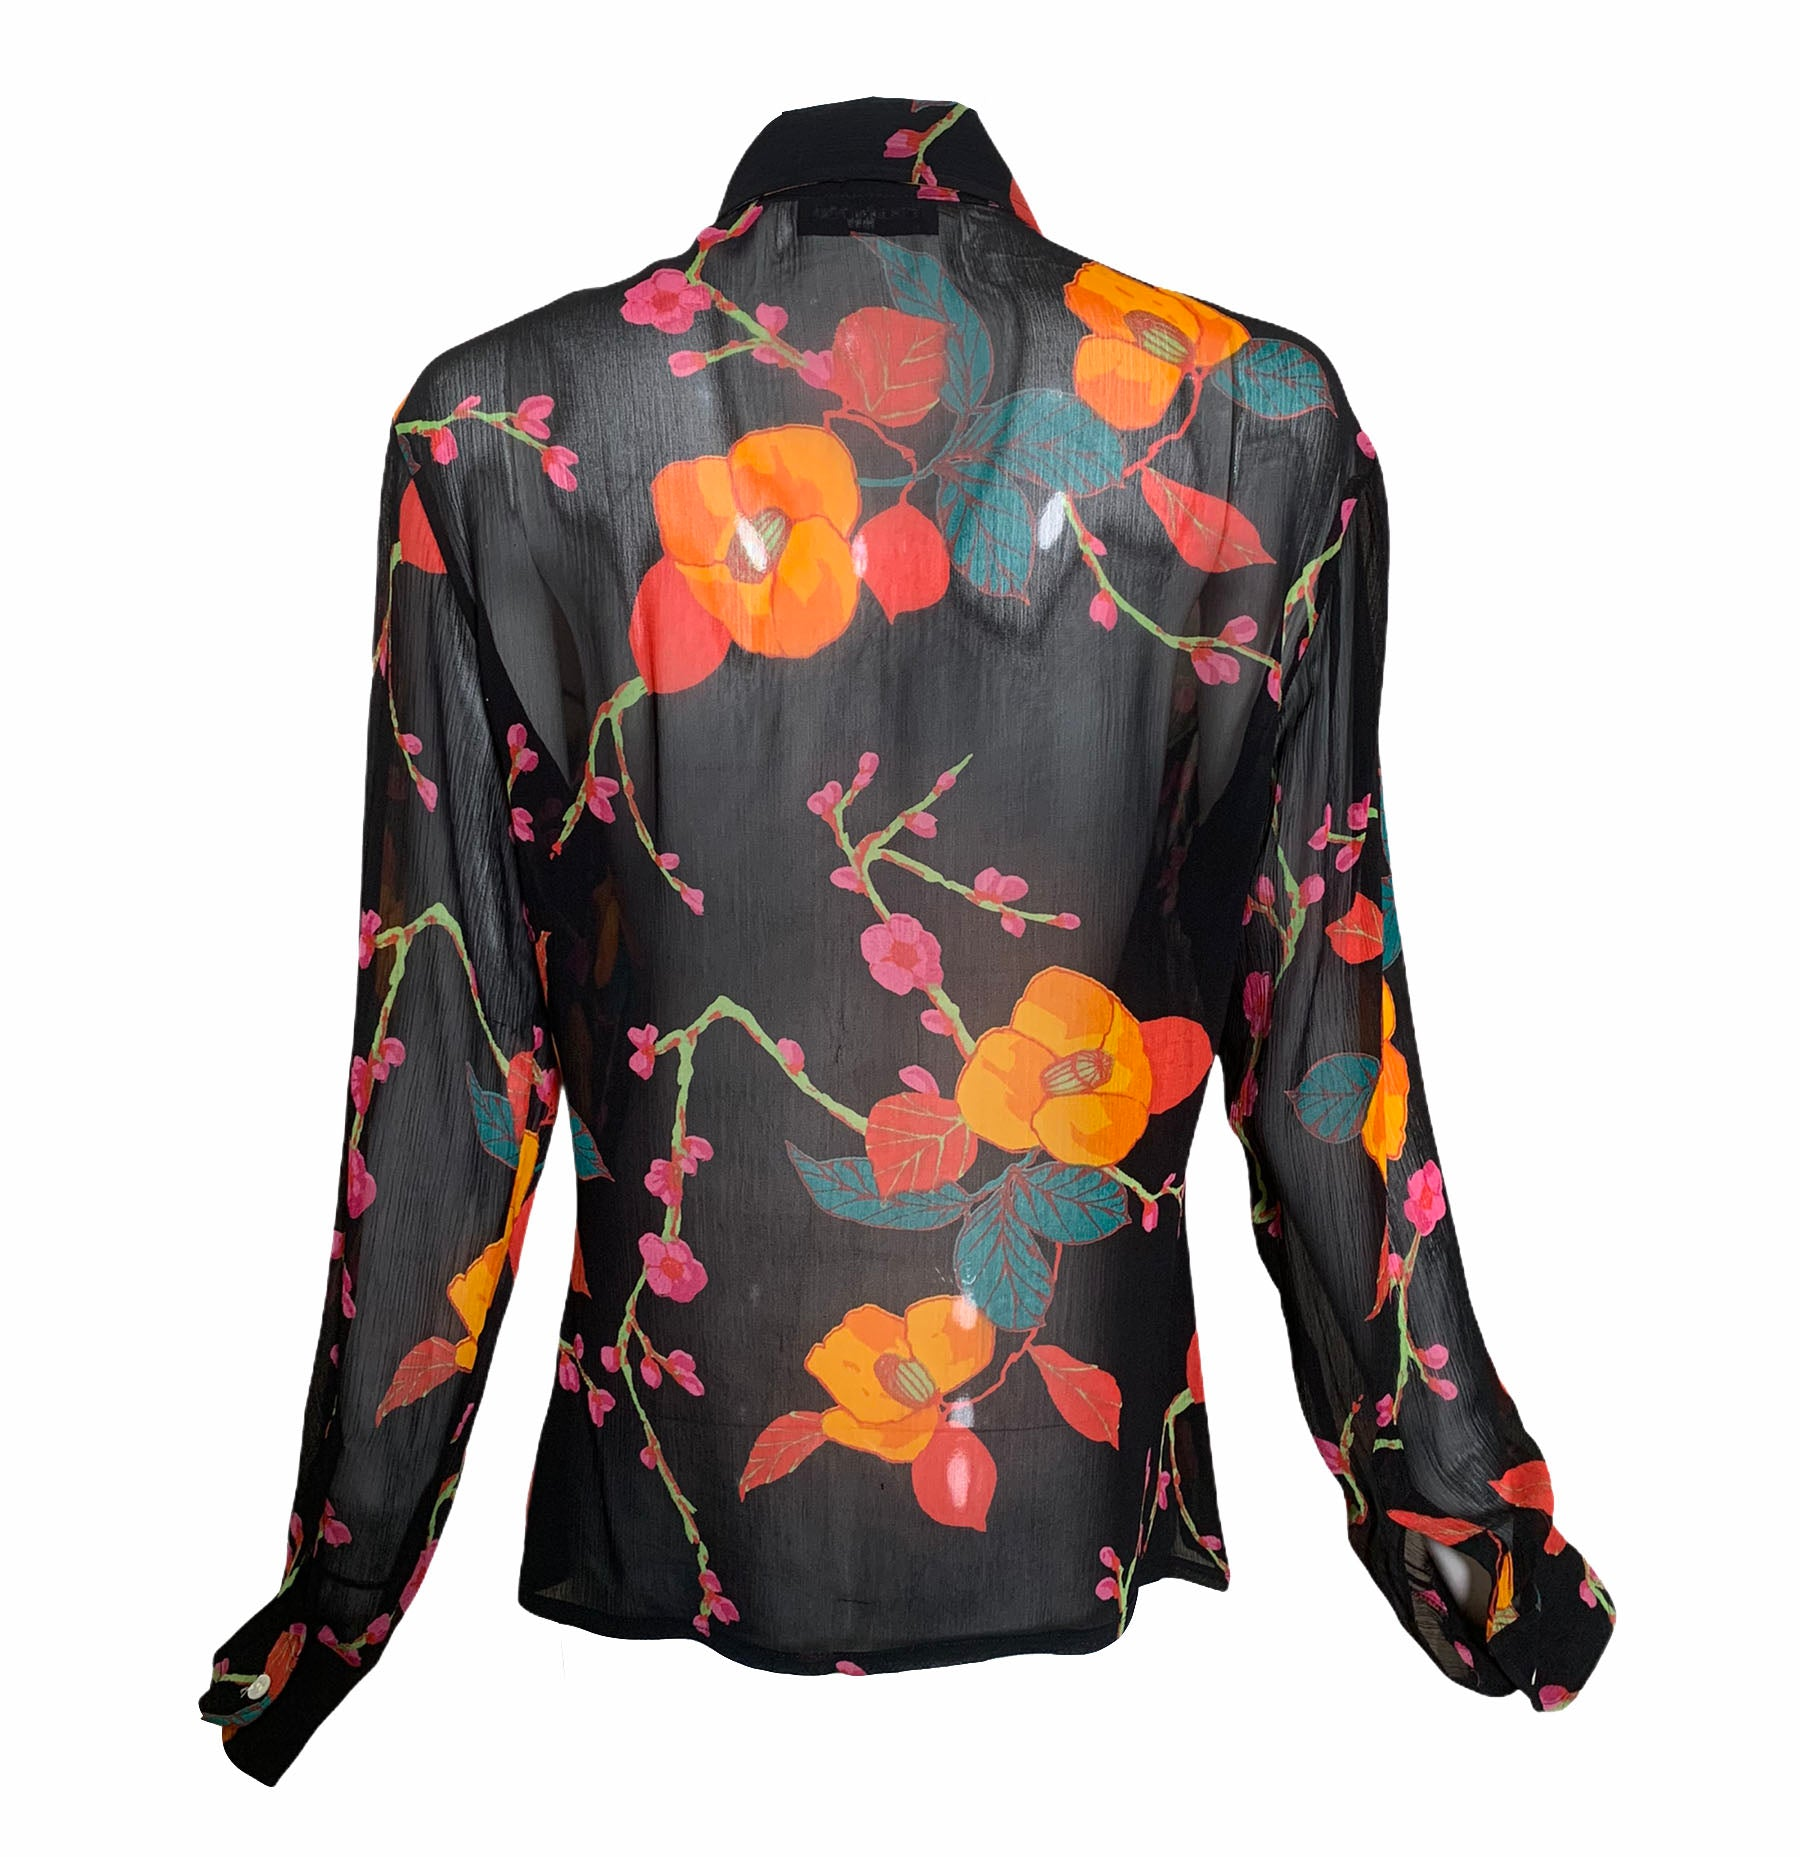 Franck Olivier Black Floral Chiffon Blouse BACK 3 of 5